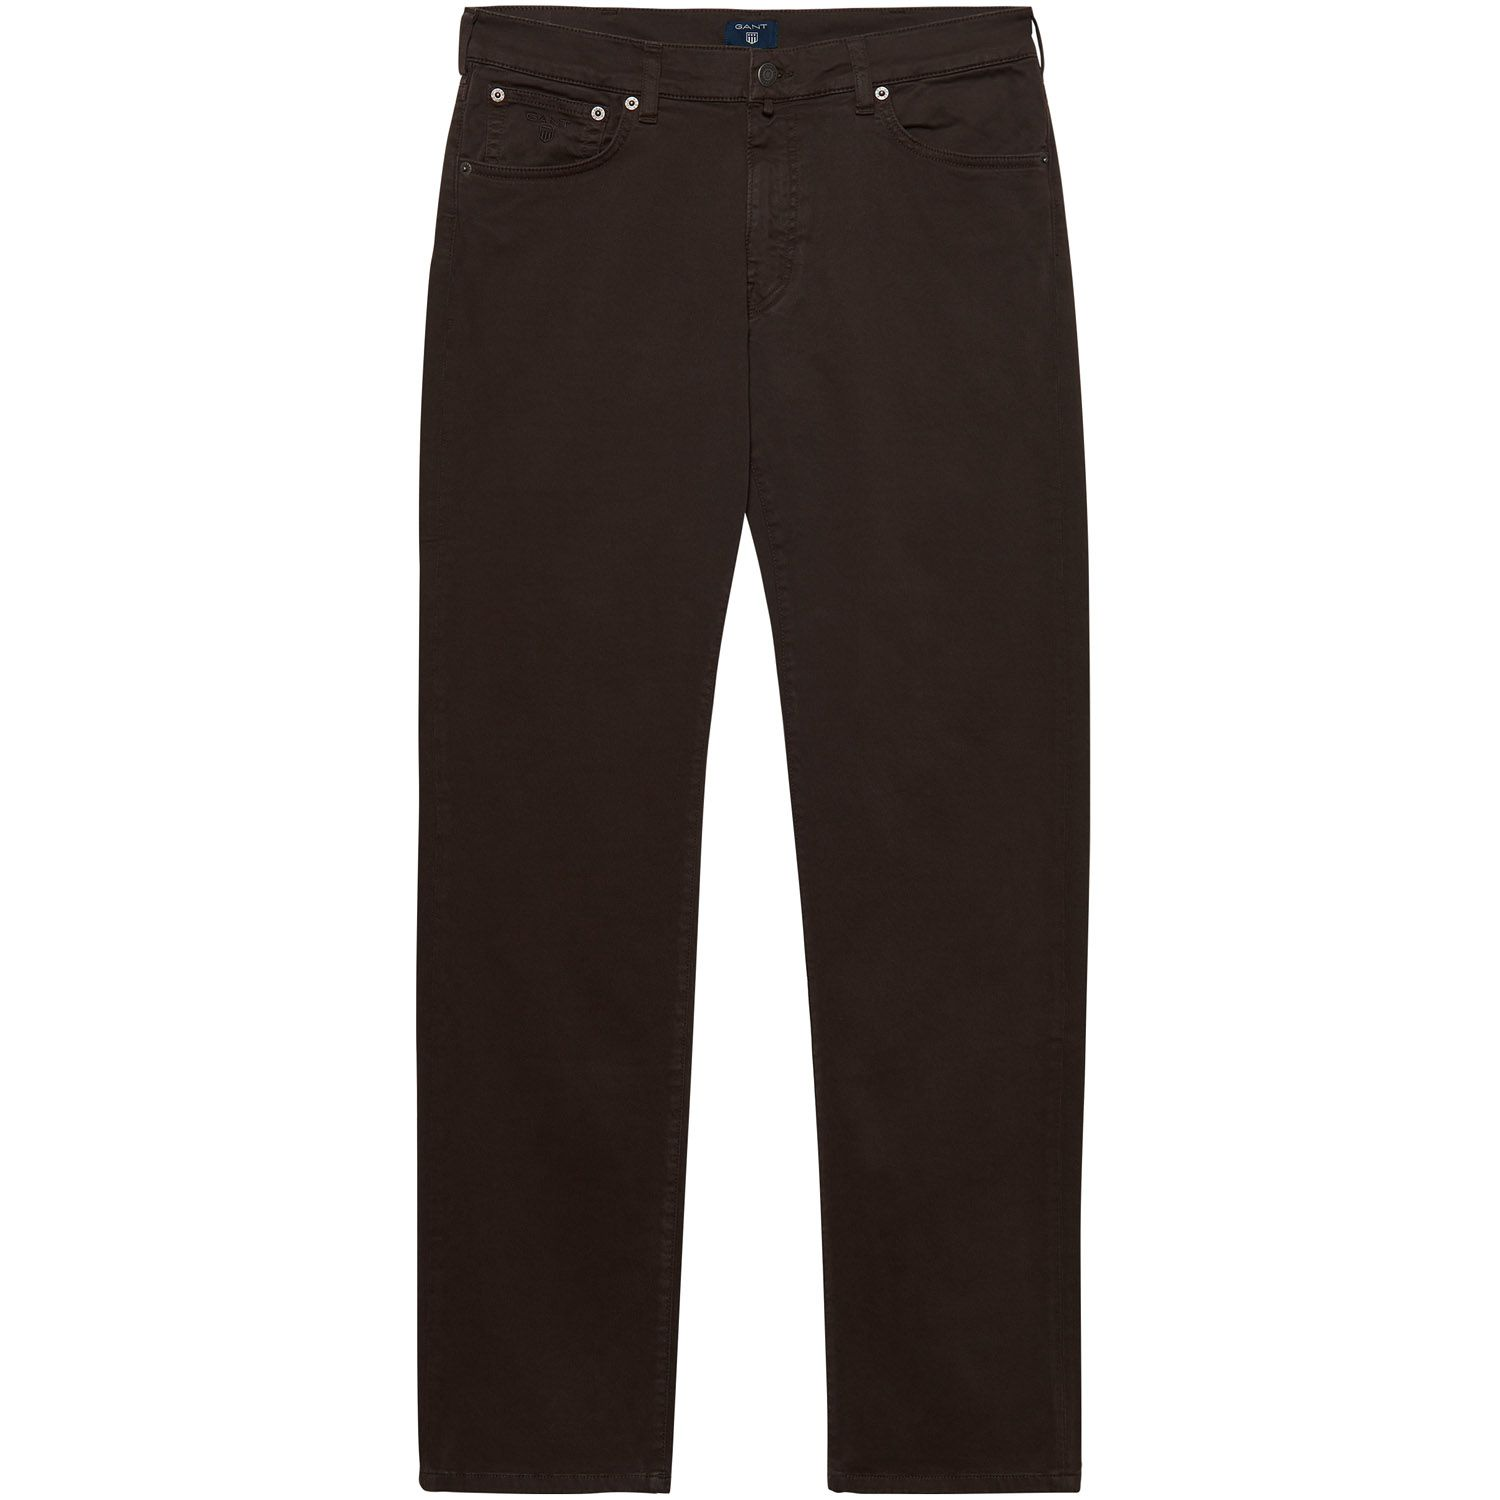 GANT Dark Brown Regular Fit Desert Twill Jeans